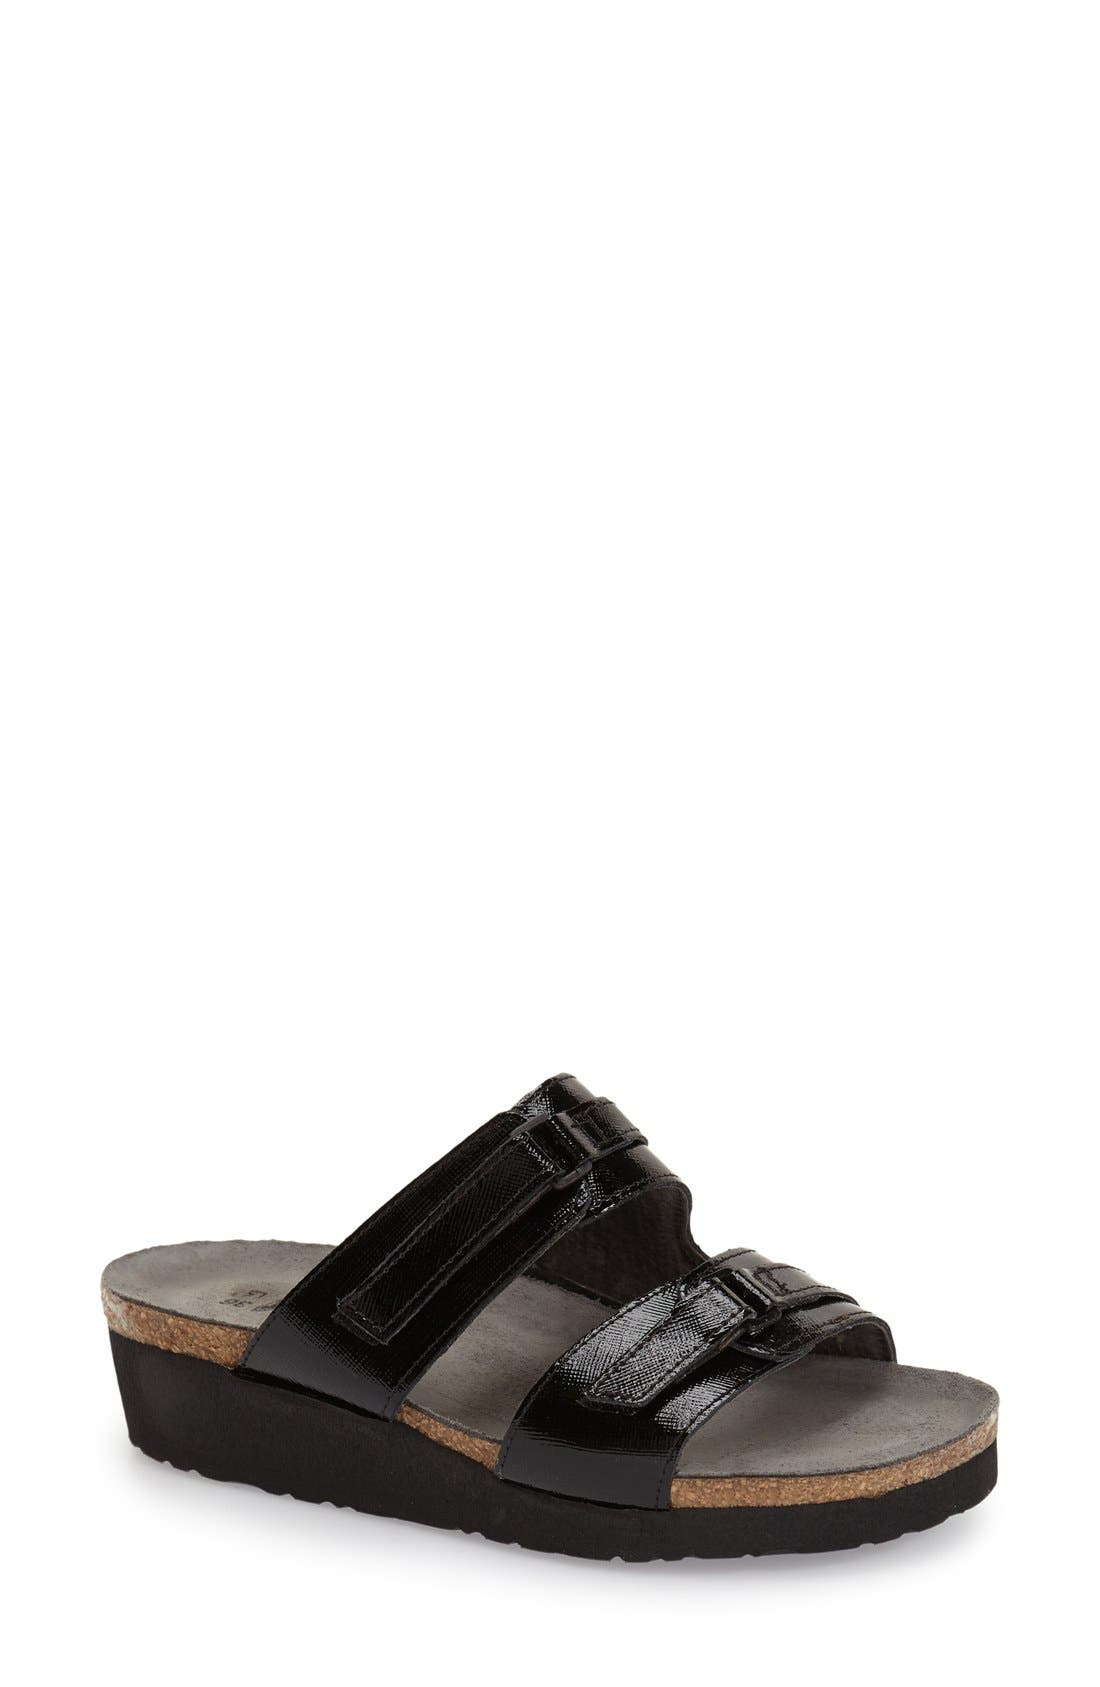 'Carly' Slide Sandal,                             Main thumbnail 1, color,                             Black Luster Leather